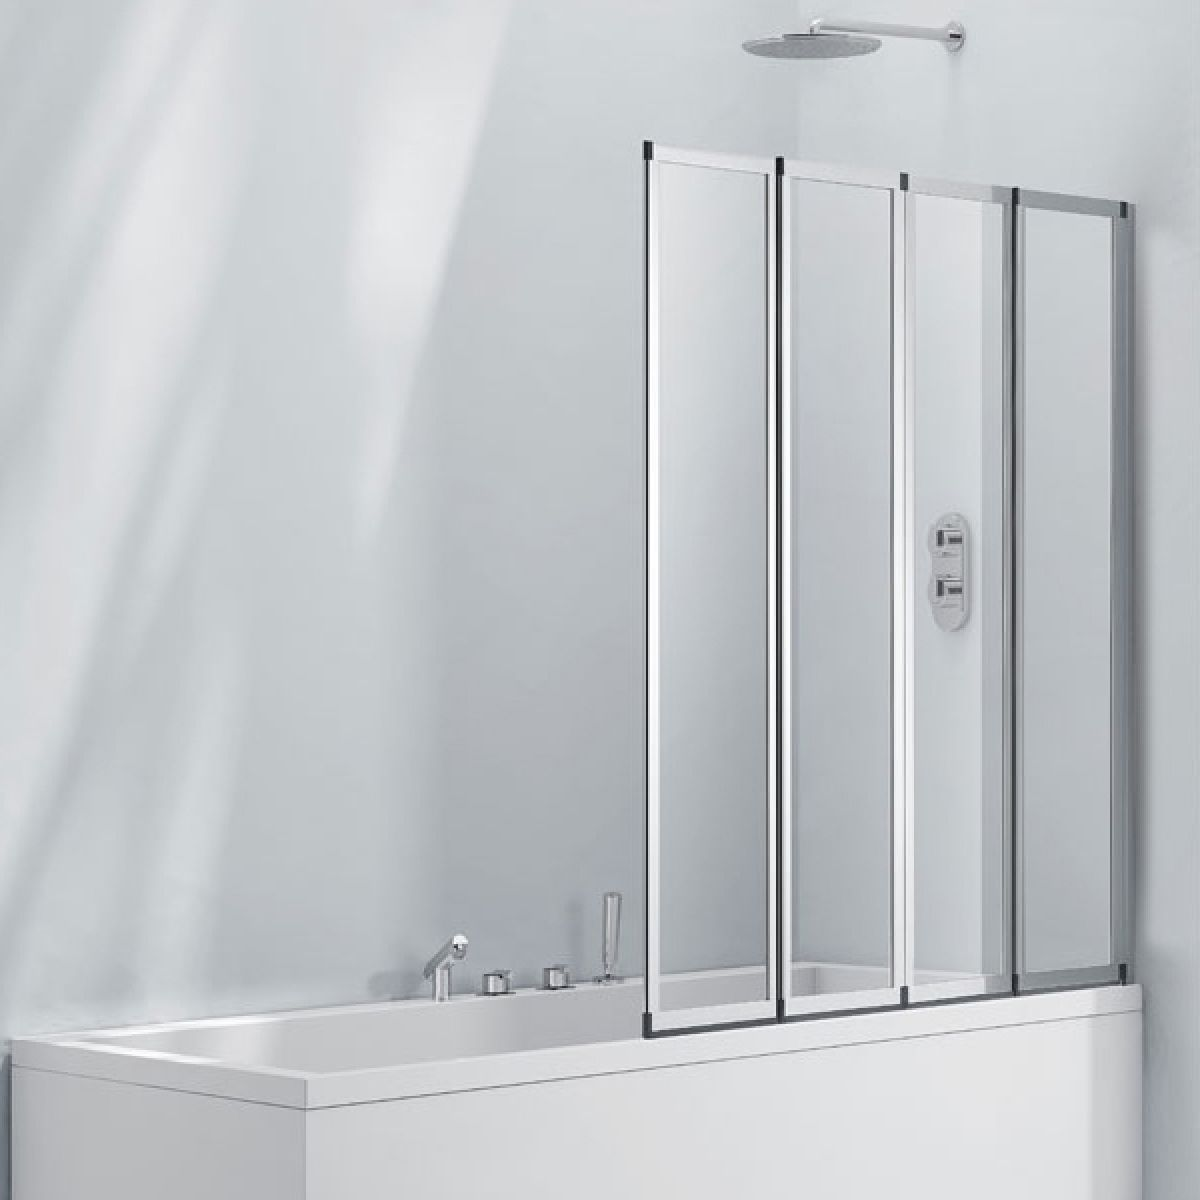 Frontline Aquaglass+ 4 Fold Bath Screen